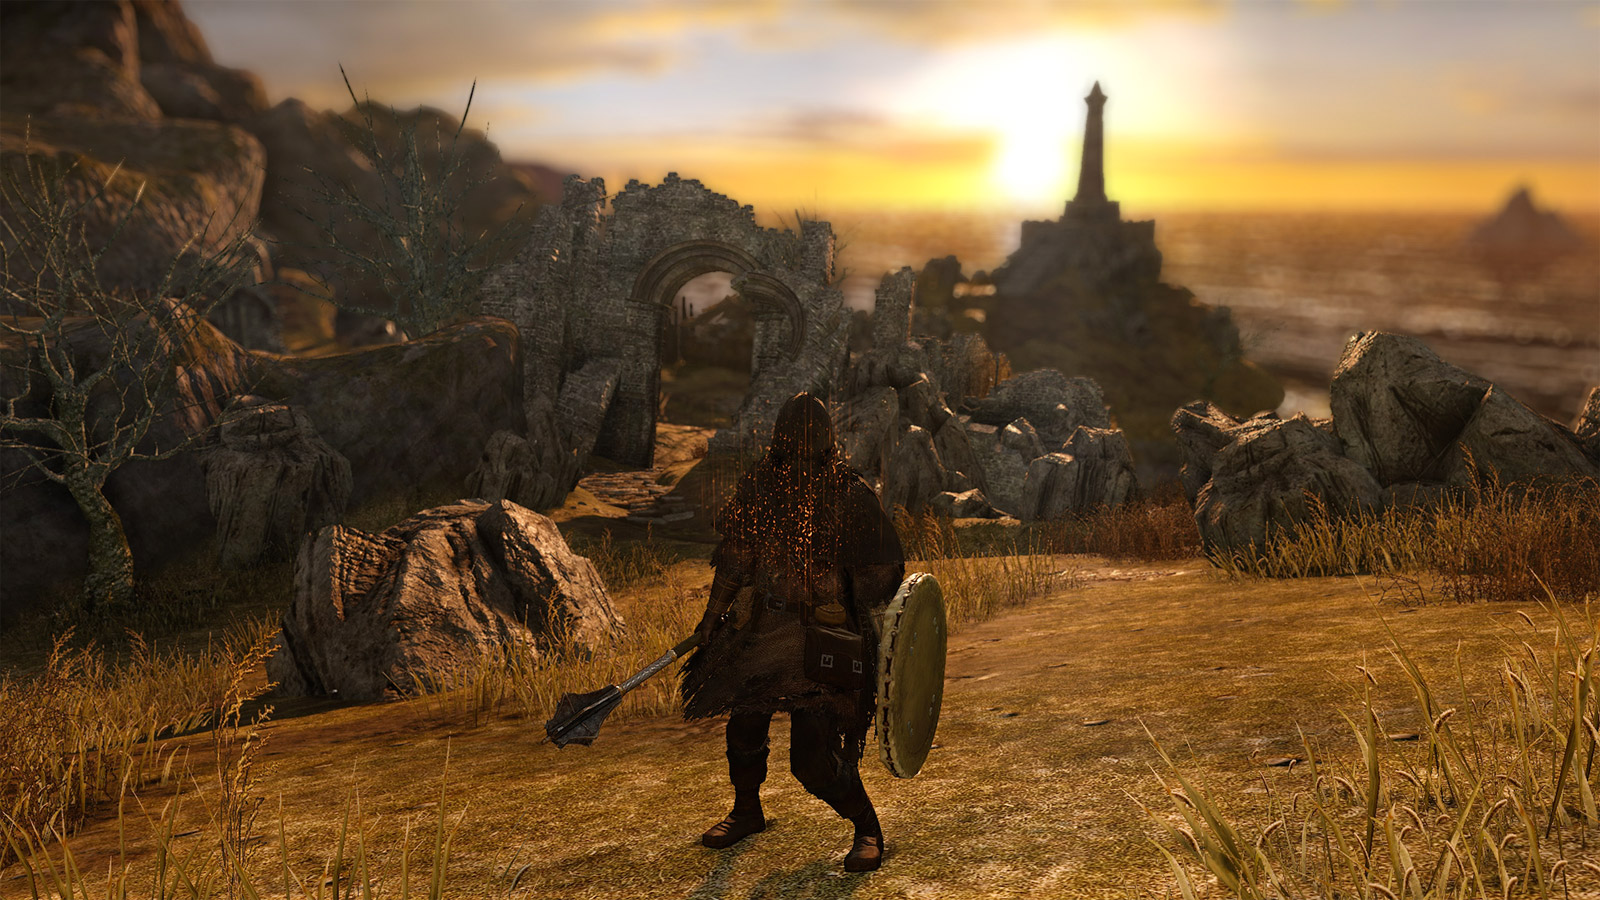 The modder who fixed Dark Souls' PC graphics releases Dark Souls 2 mod